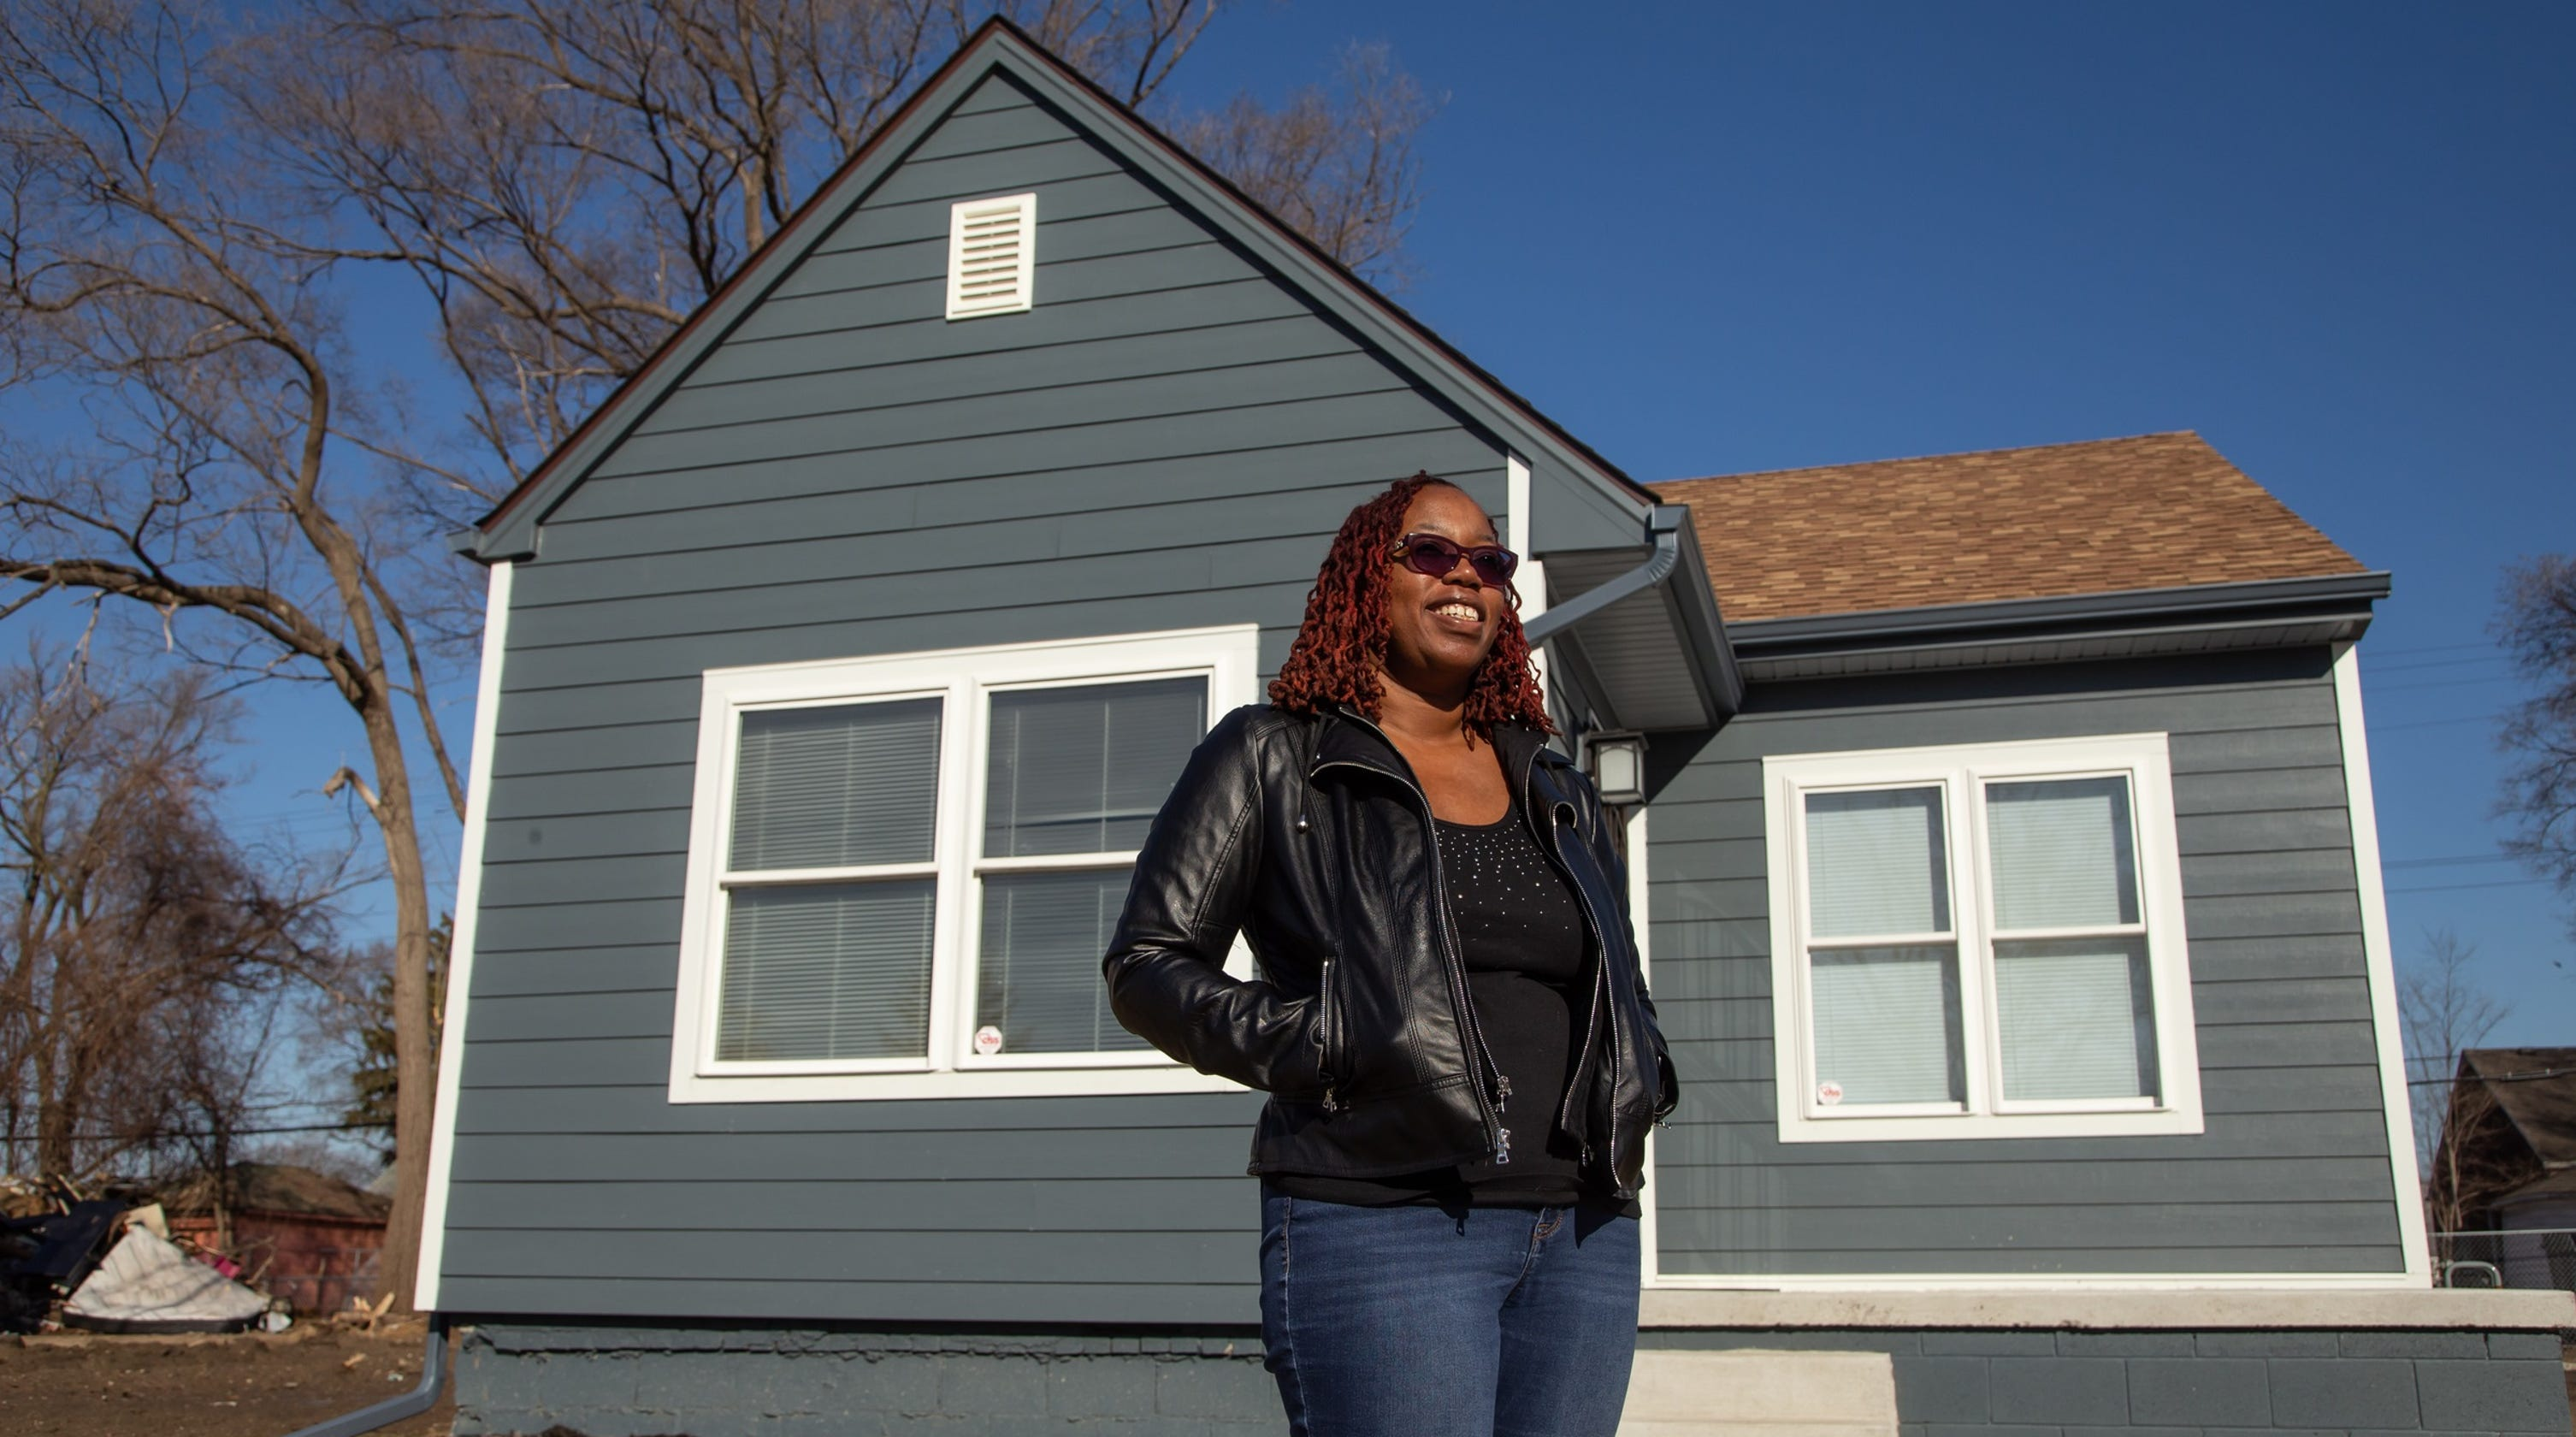 Few black people get home mortgages in Detroit, data show